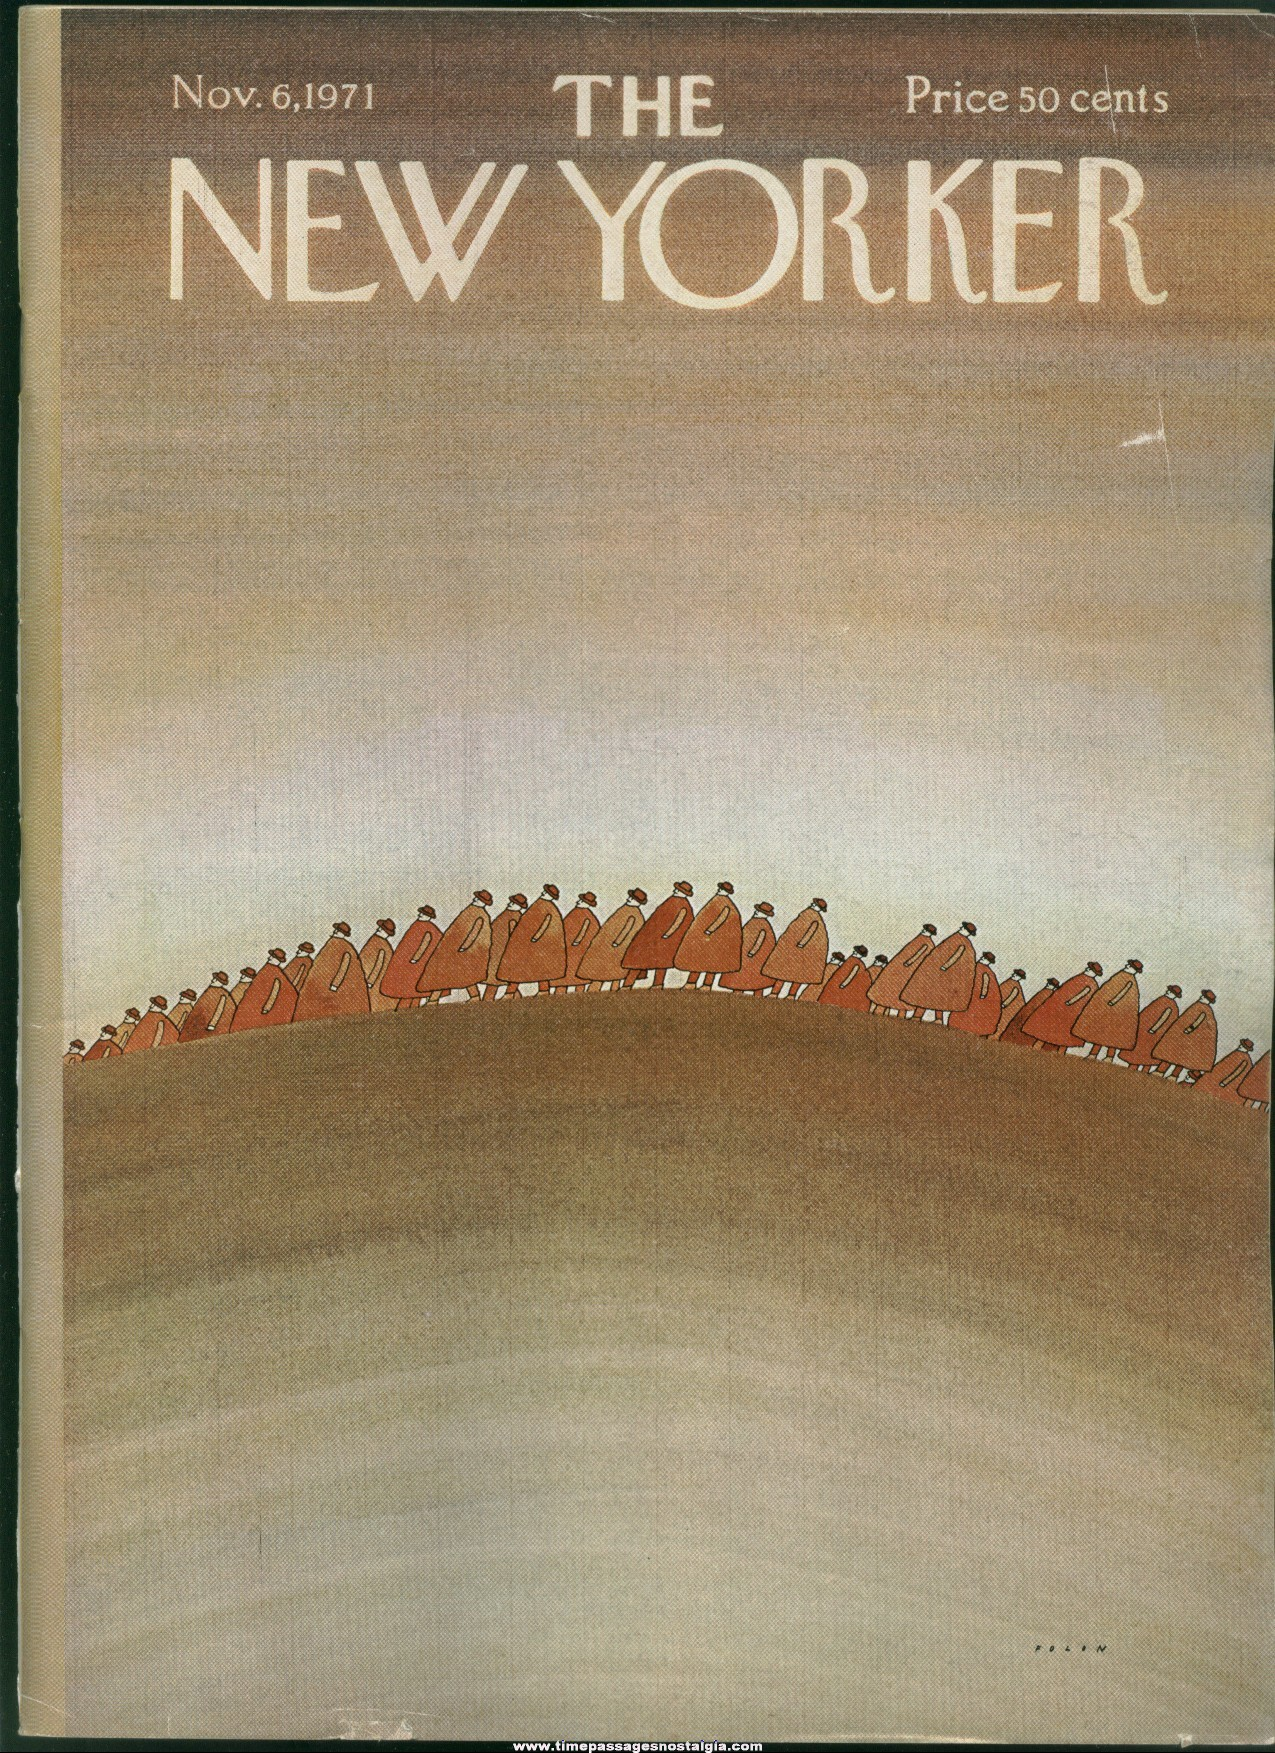 New Yorker Magazine - November 6, 1971 - Cover by Jean-Michel Folon